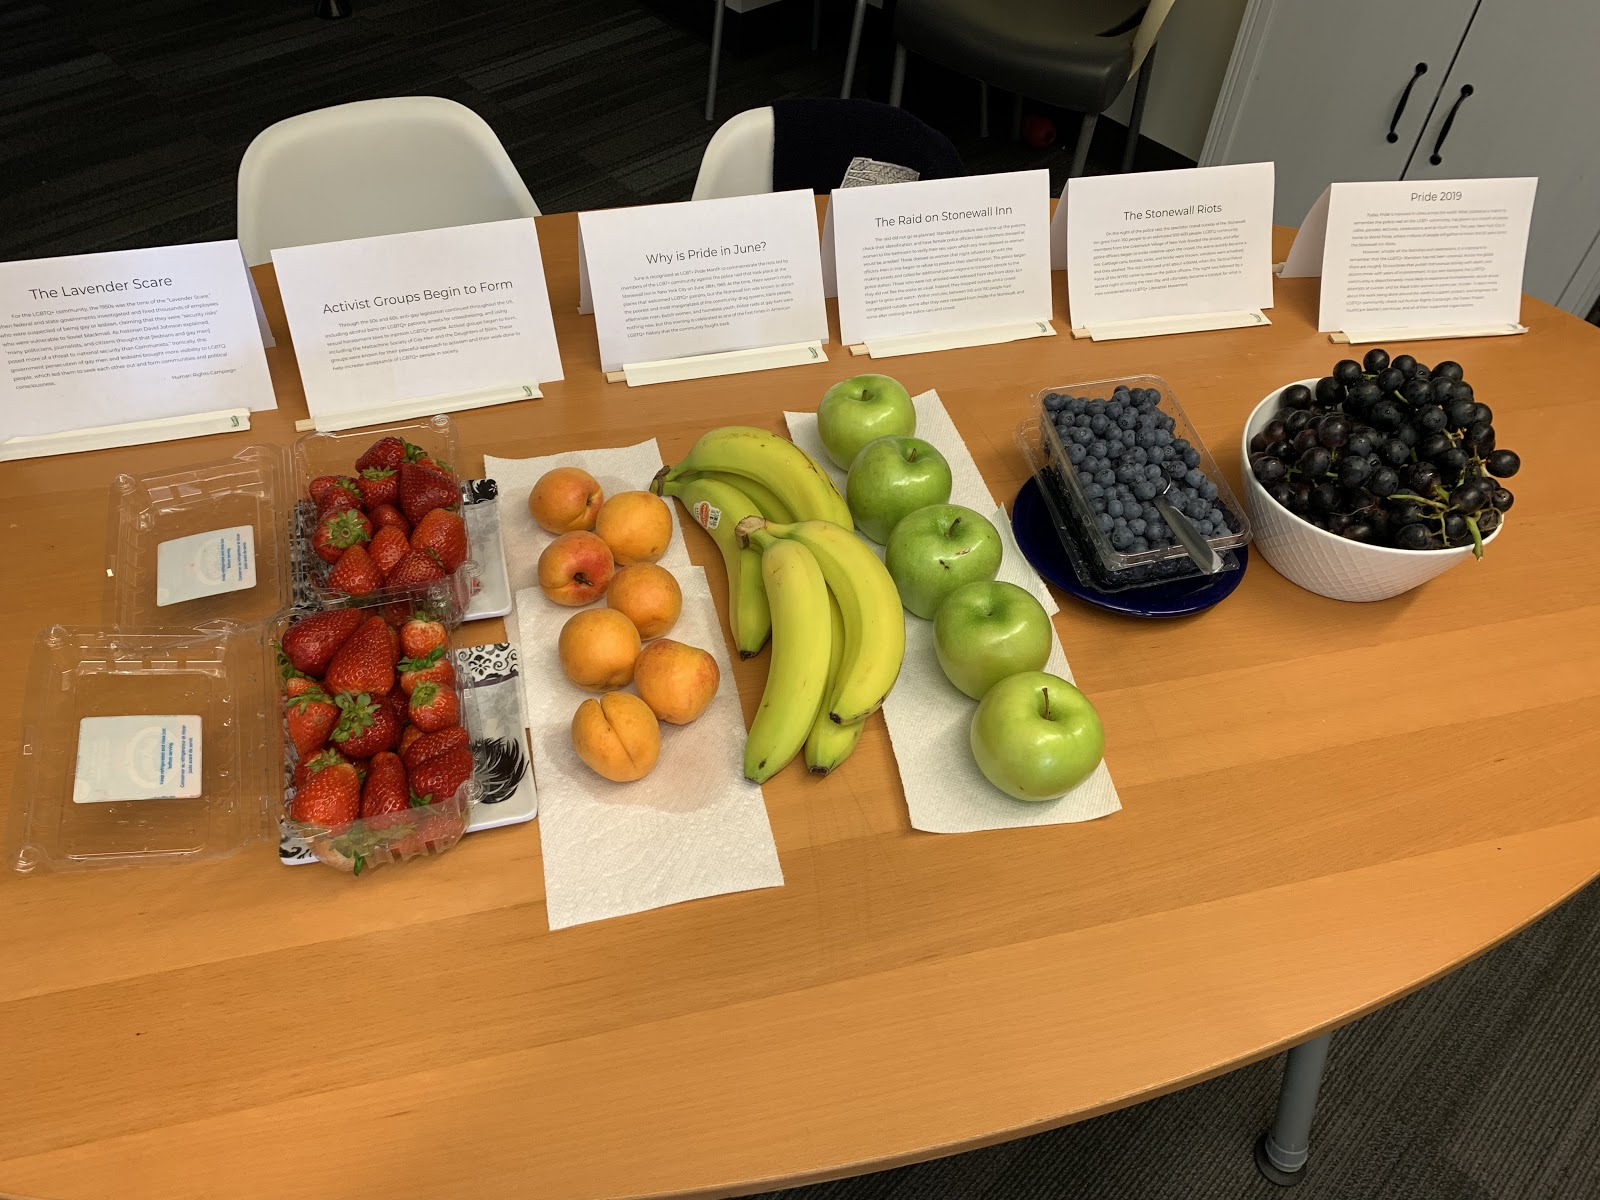 Information on the history of the LGBTQ+ movement with fruit in our break room.